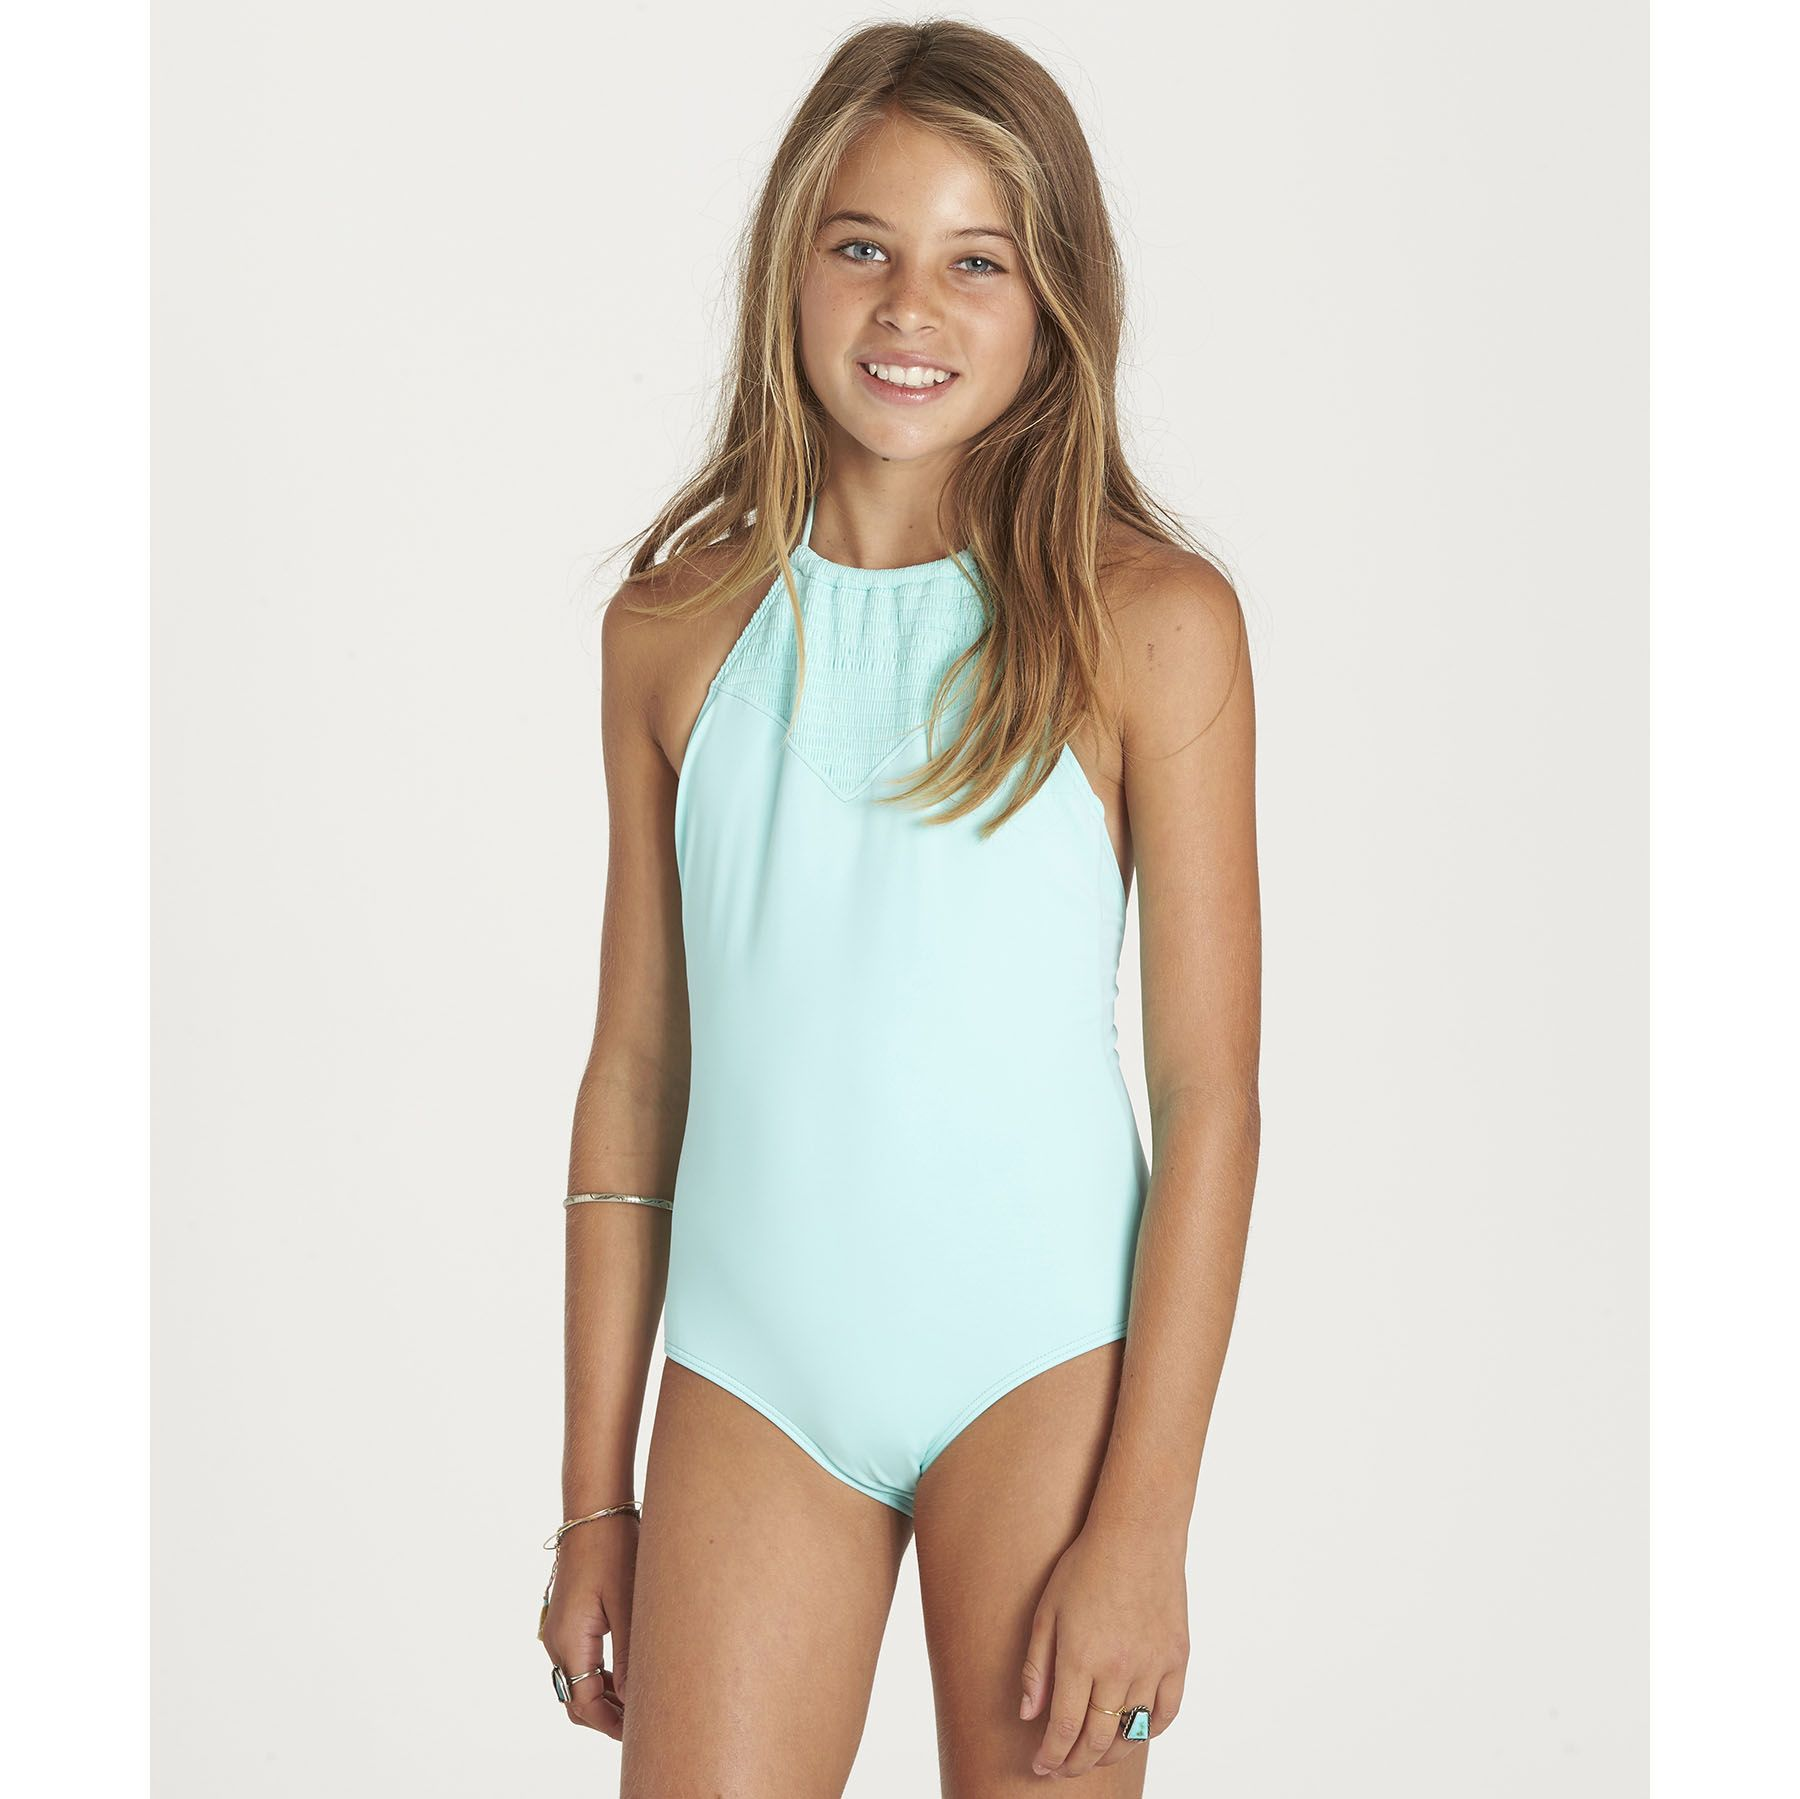 Where Are The Modest Bathing Suits For Girls